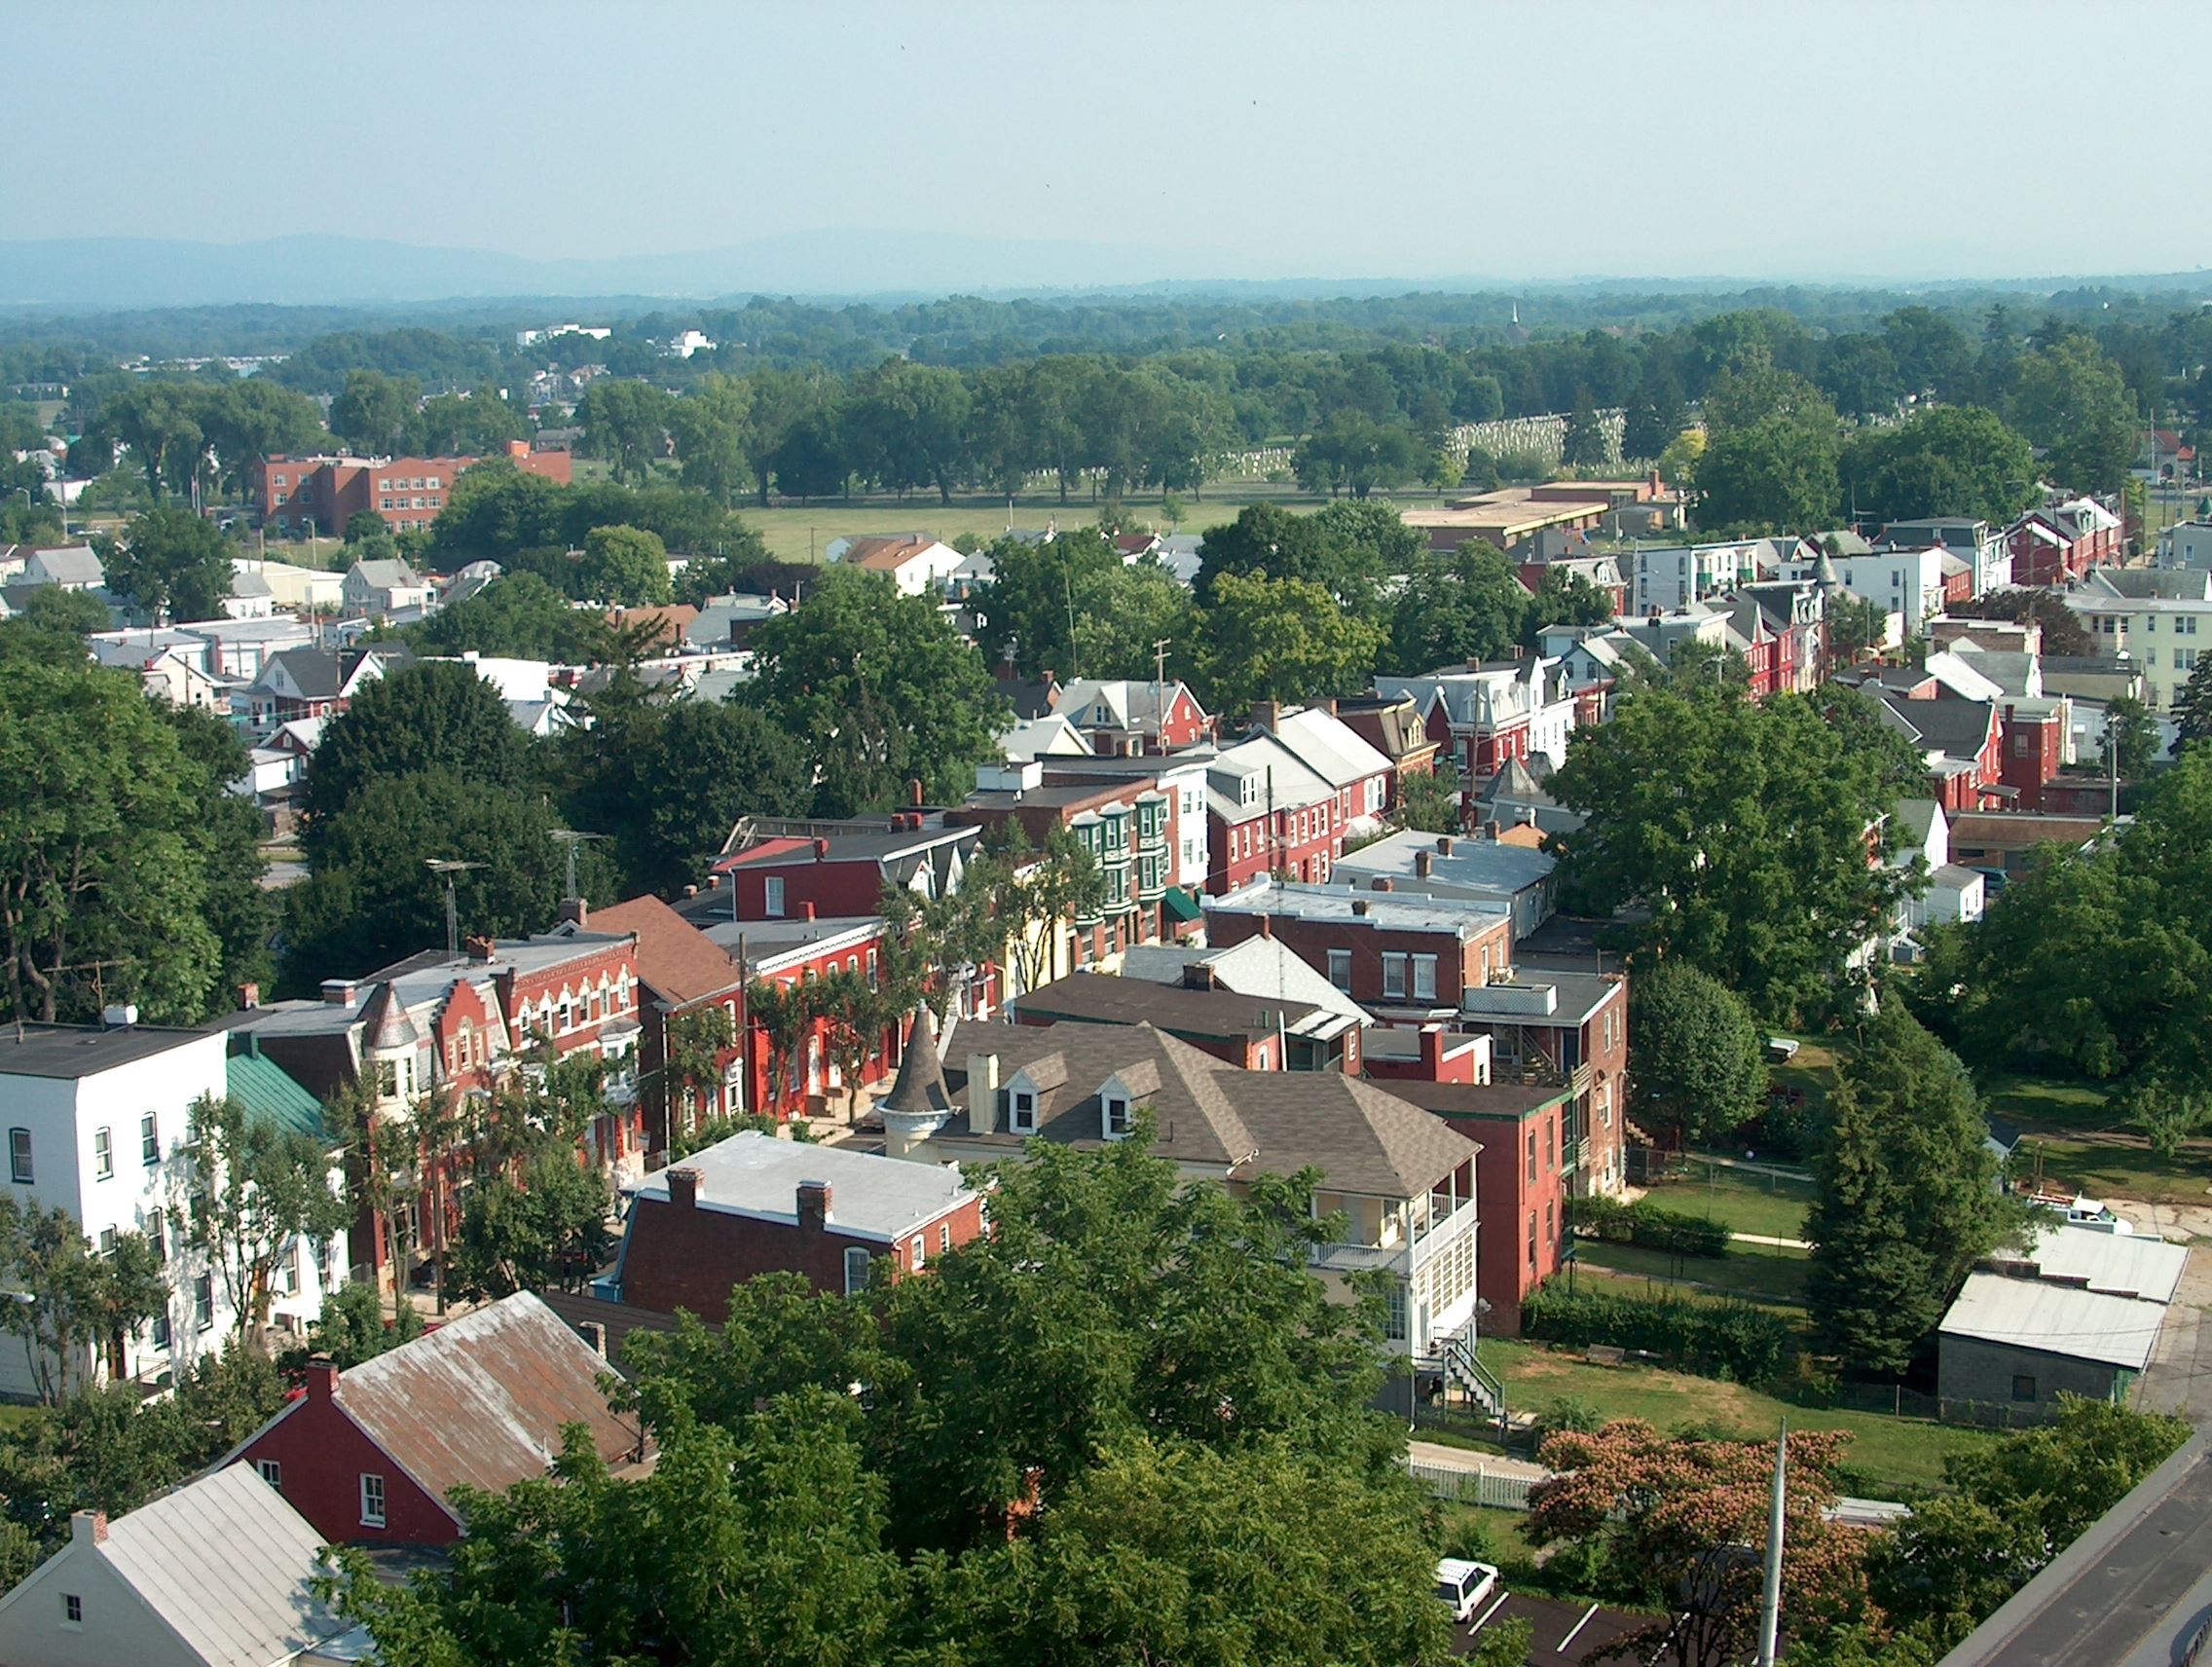 Aerial view of South Potomac Street